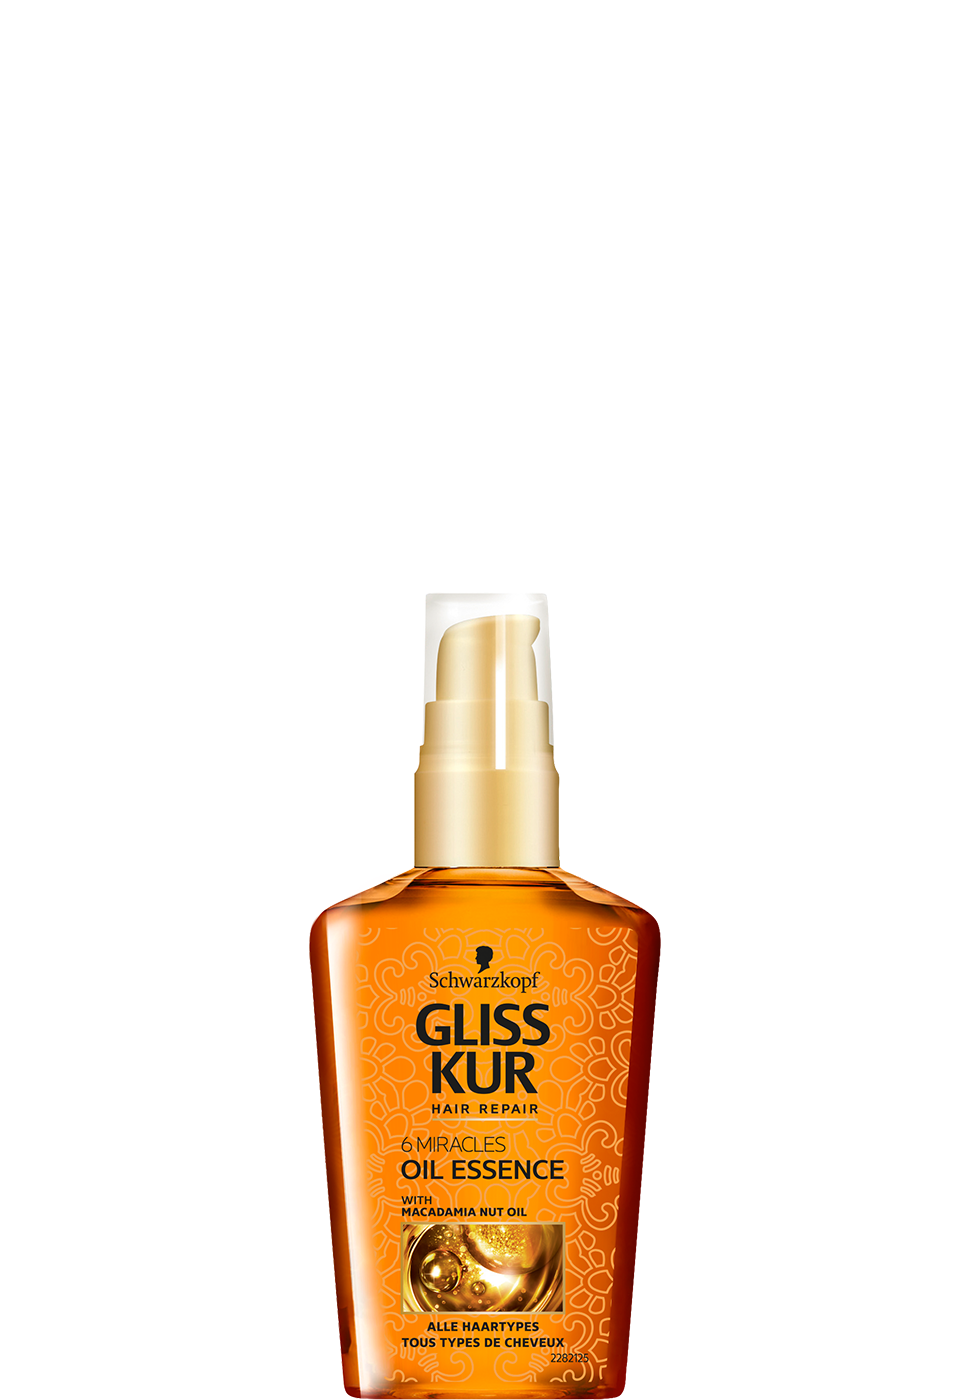 970x1400_Packs_2018_5410091707866-Gliss-Kur-6Miracle_Flesje-75ml